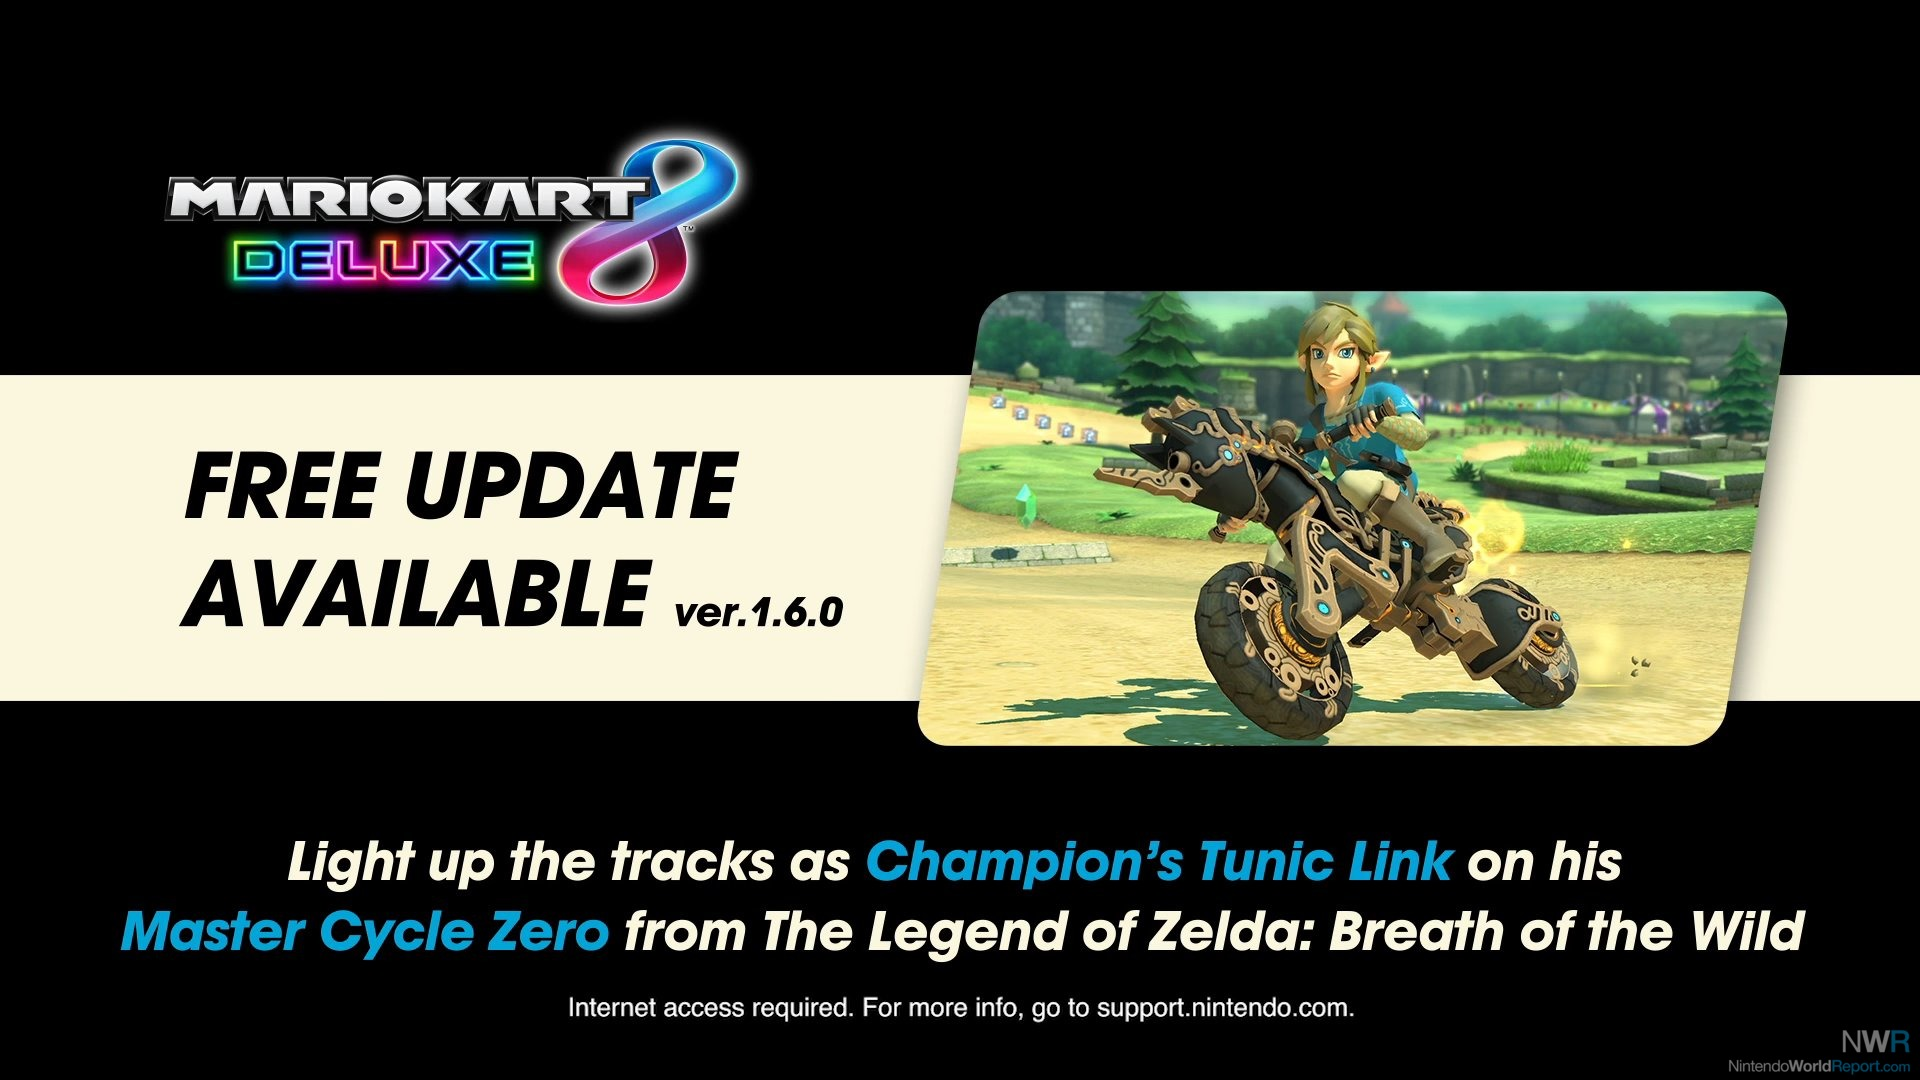 Breath of the Wild's Master Cycle Zero comes to Mario Kart 8